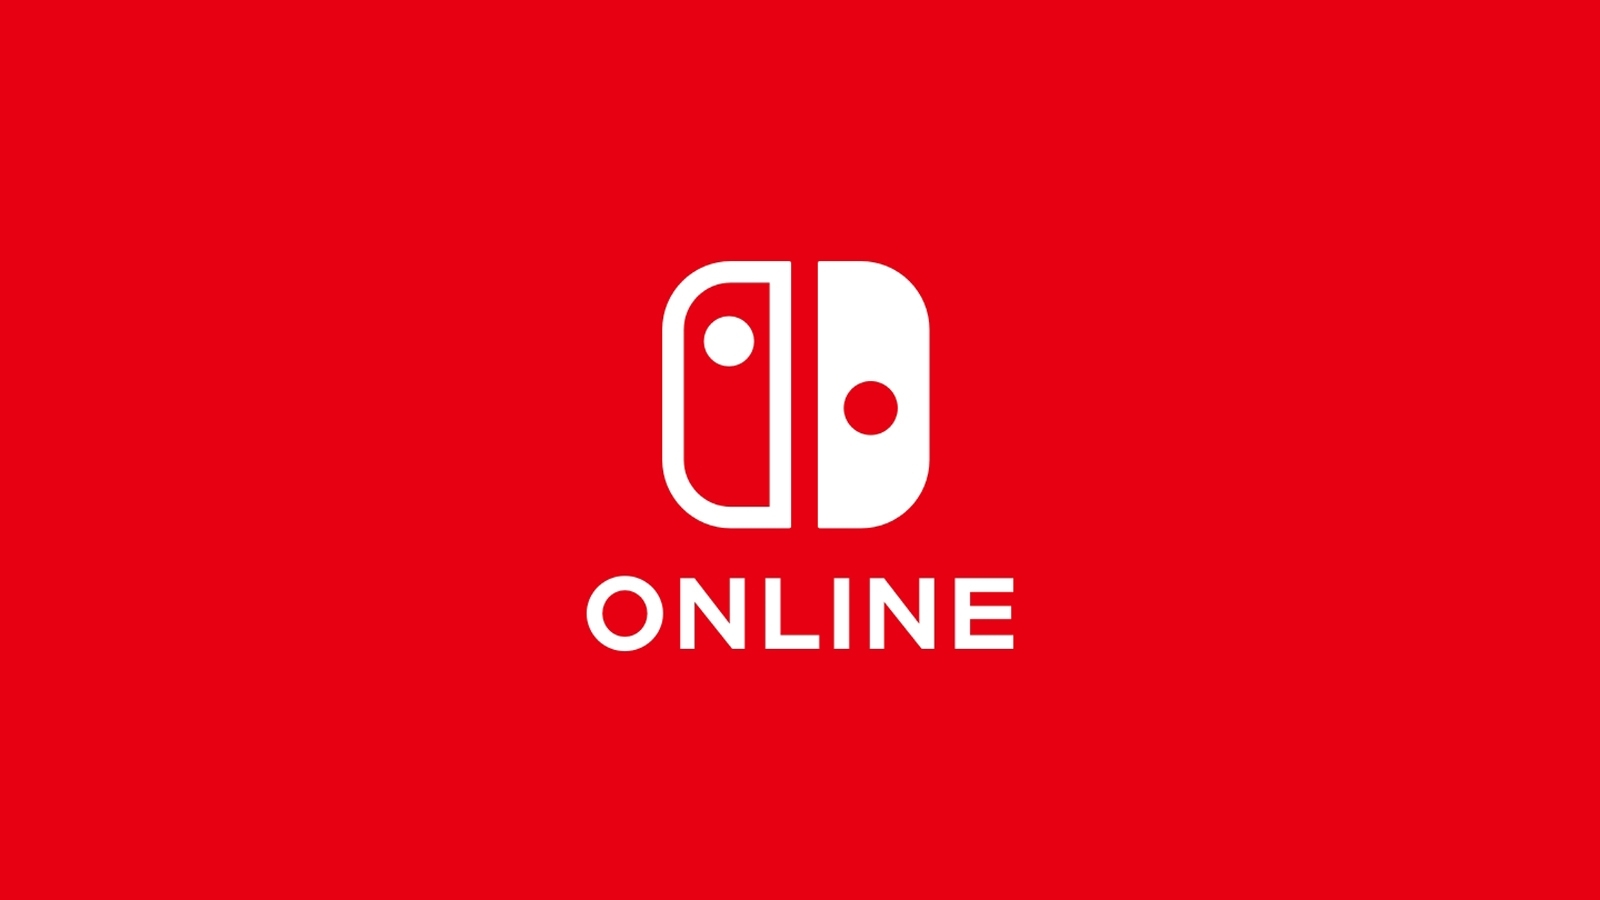 Nintendo Switch online service app goes live ahead of Splatoon 2 launch